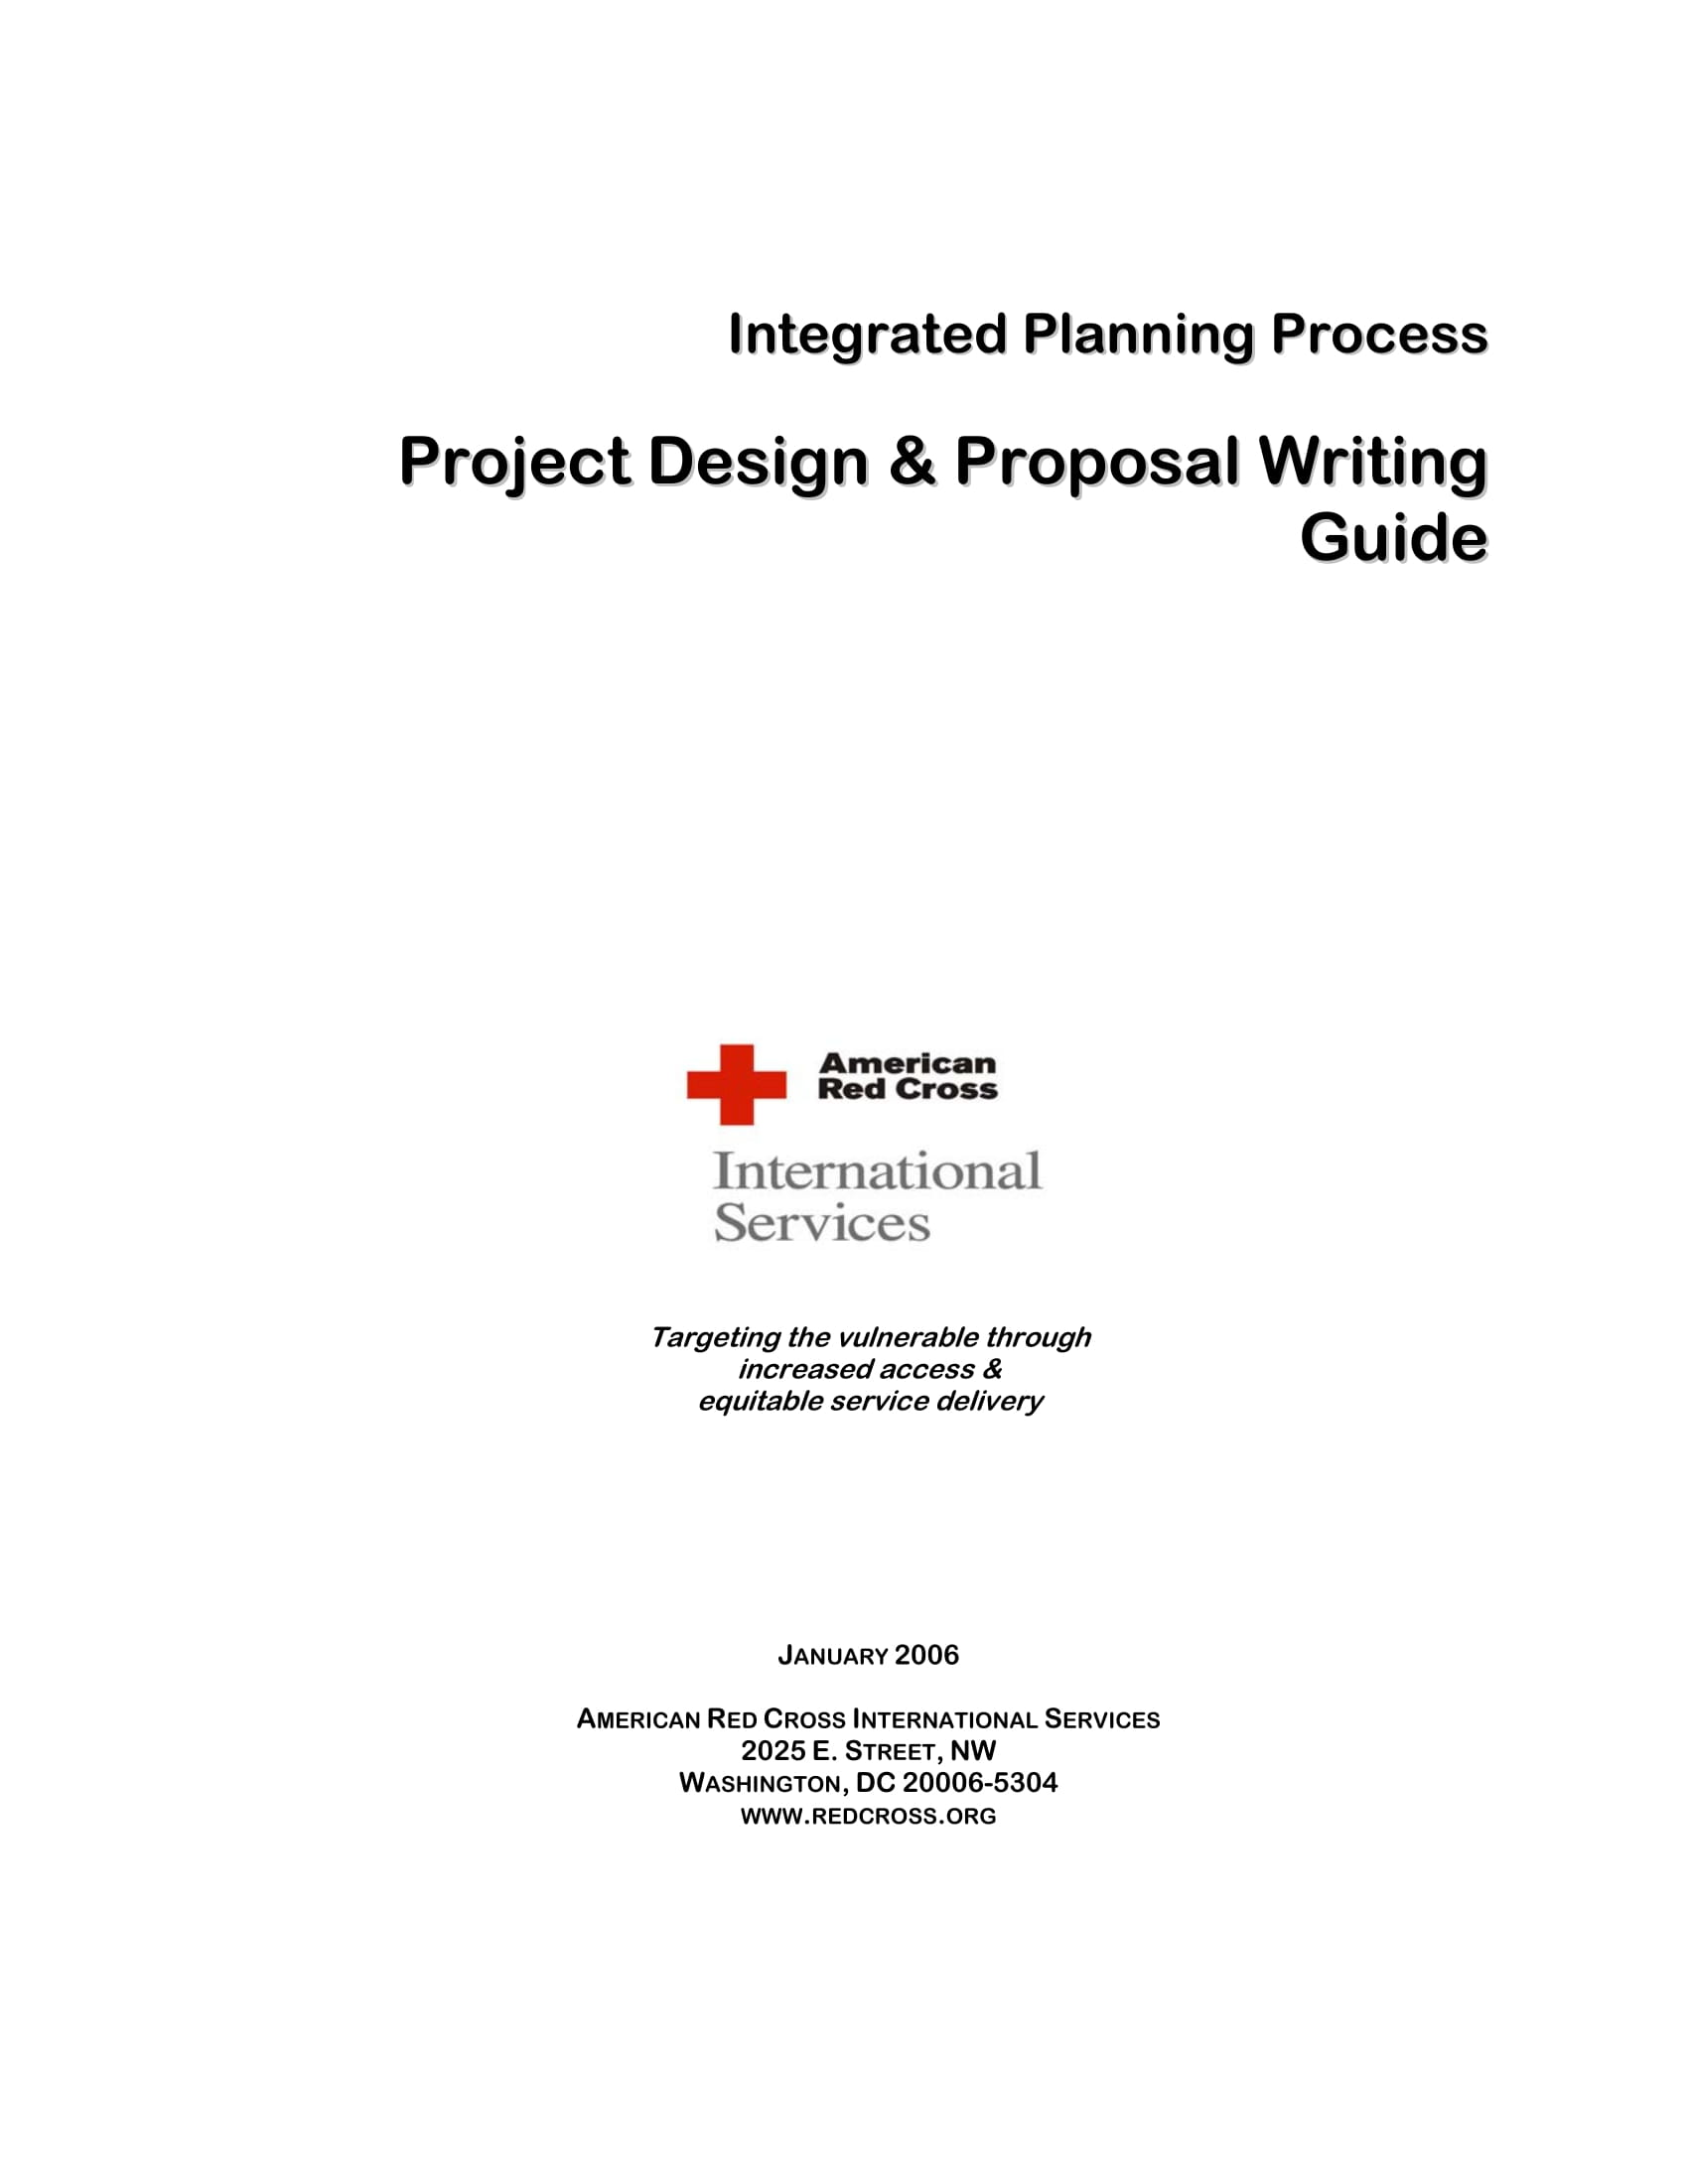 project design and proposal writing guide example 01